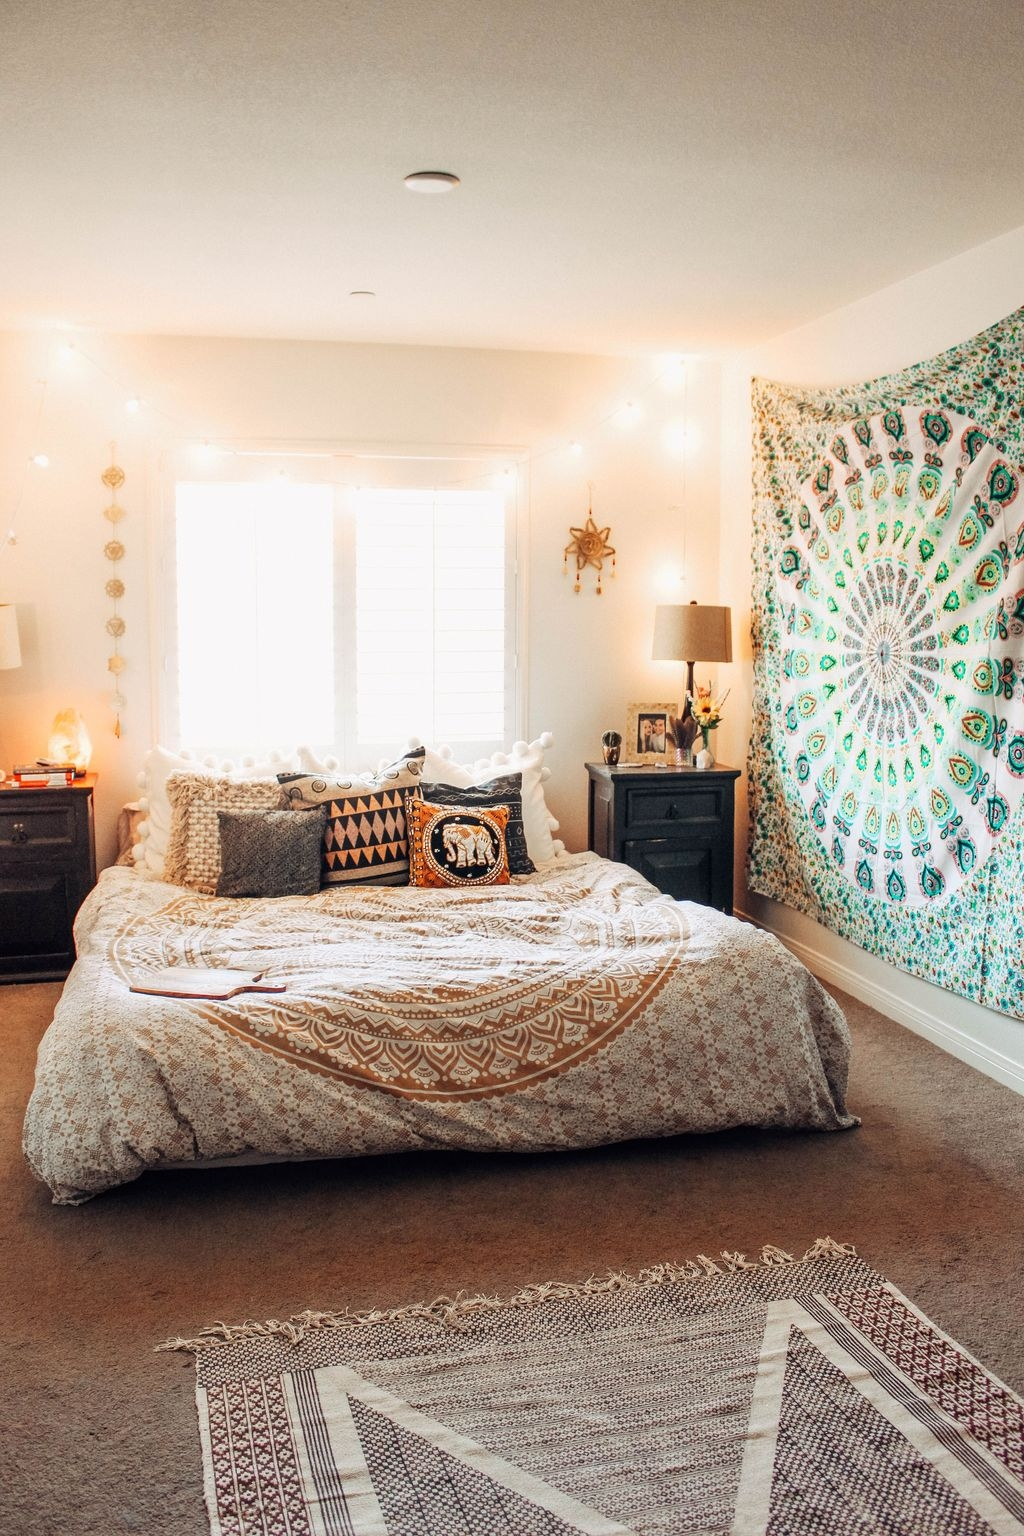 Make Your Bedroom More Romantic With These Romantic ...